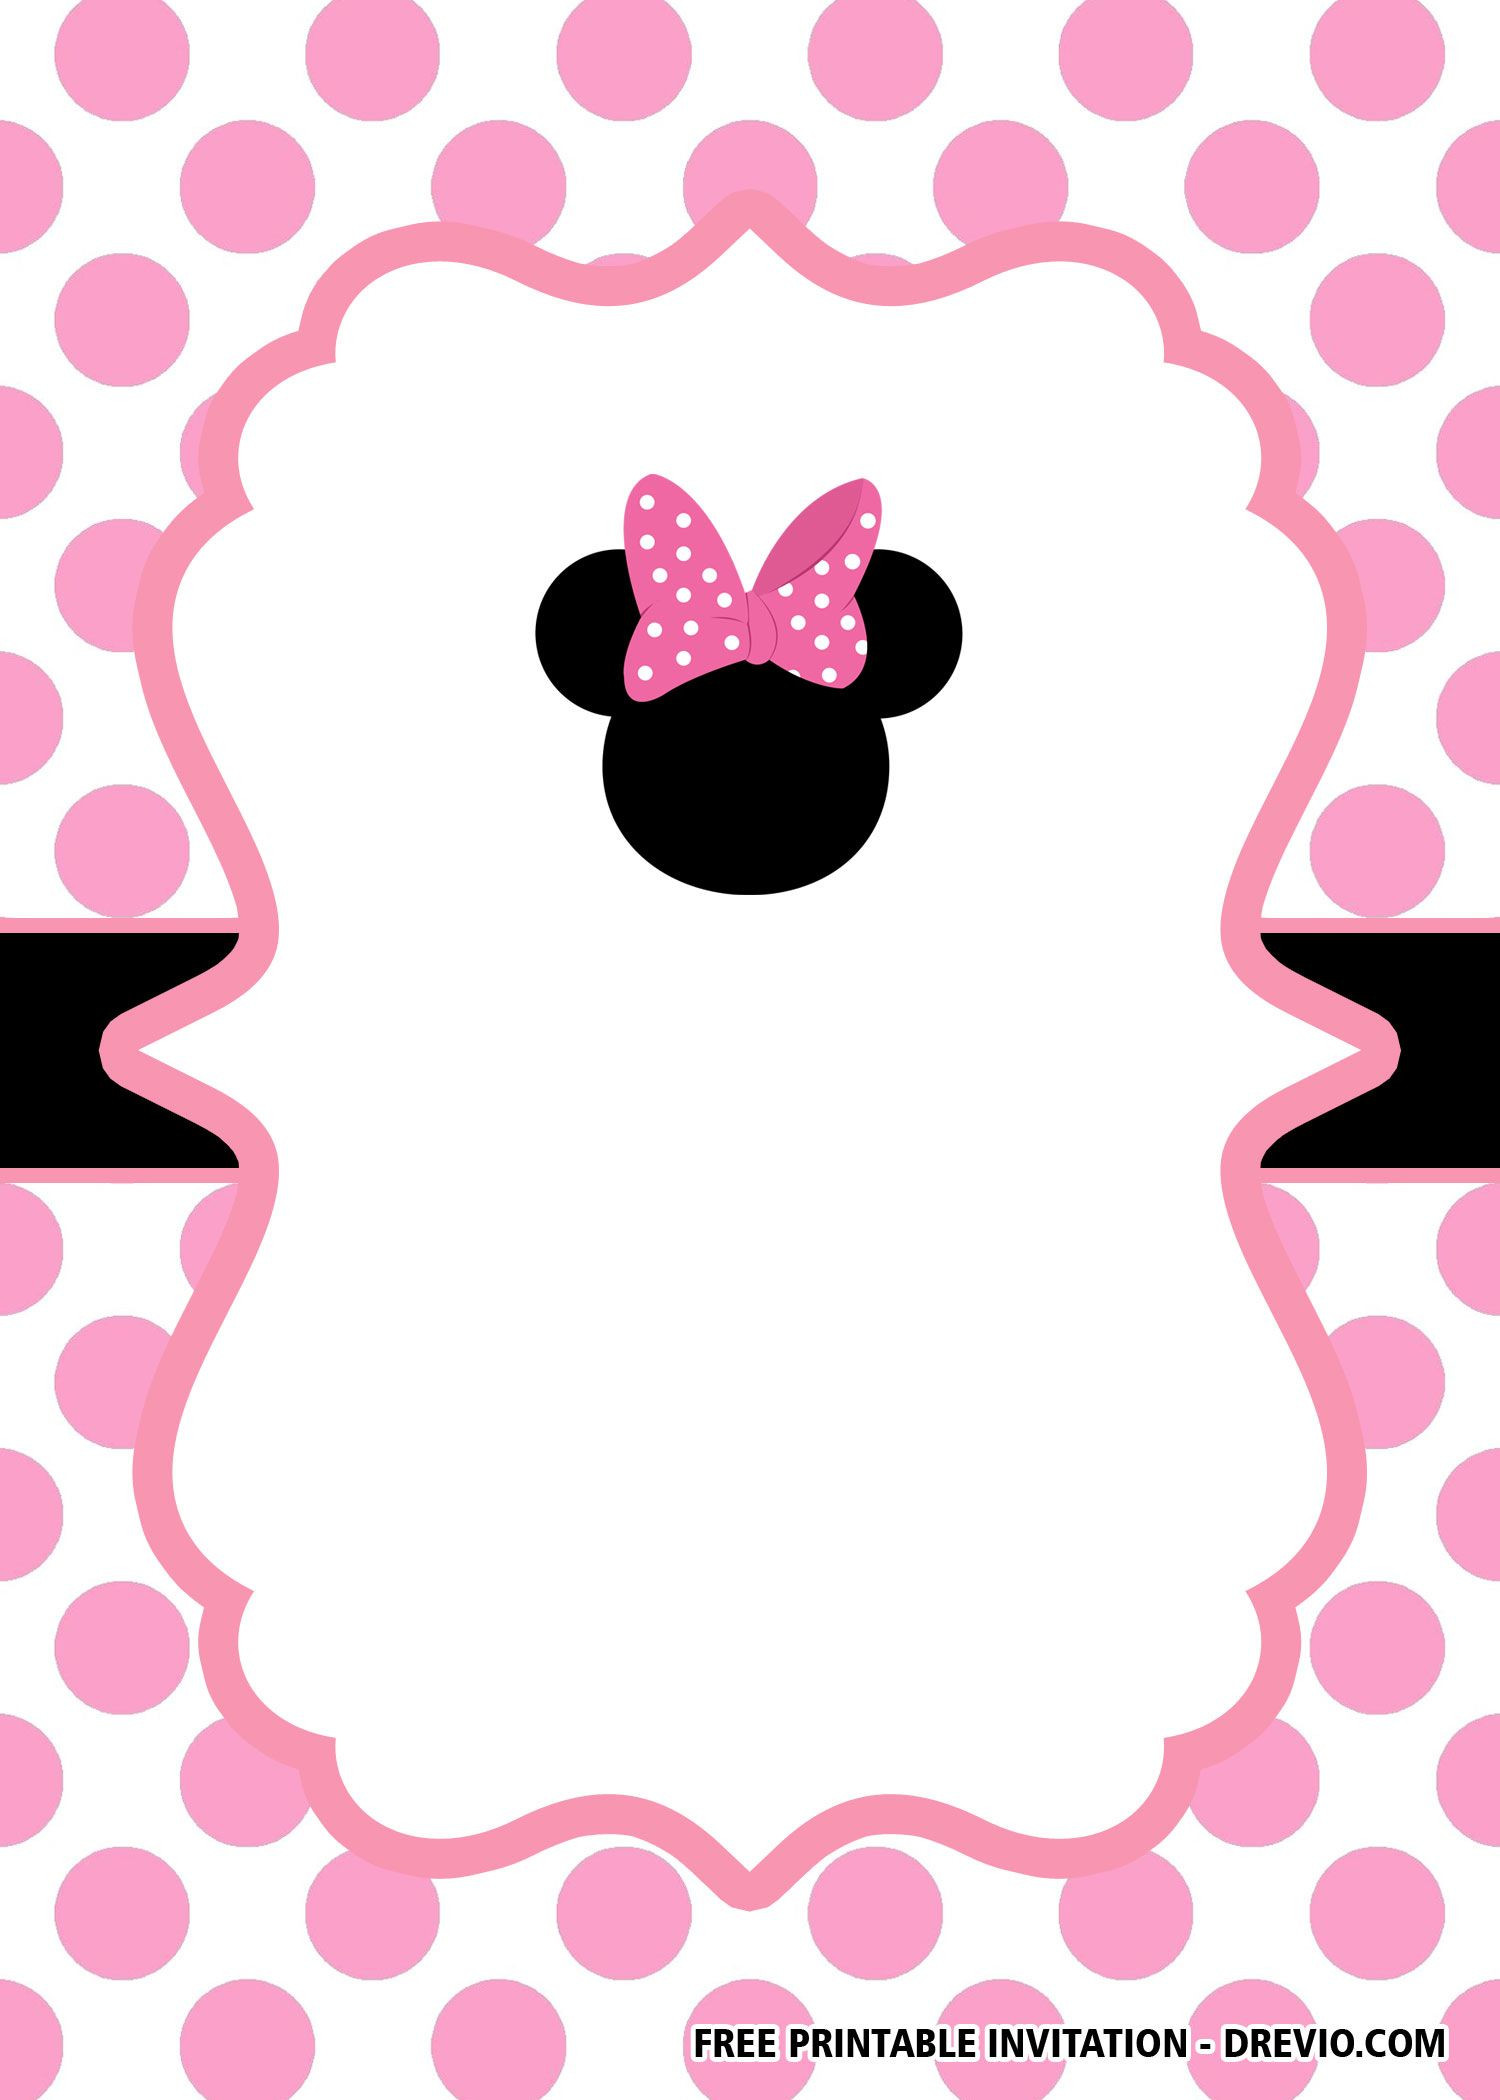 FREE Minnie Mouse Head Pink Invitation Templates